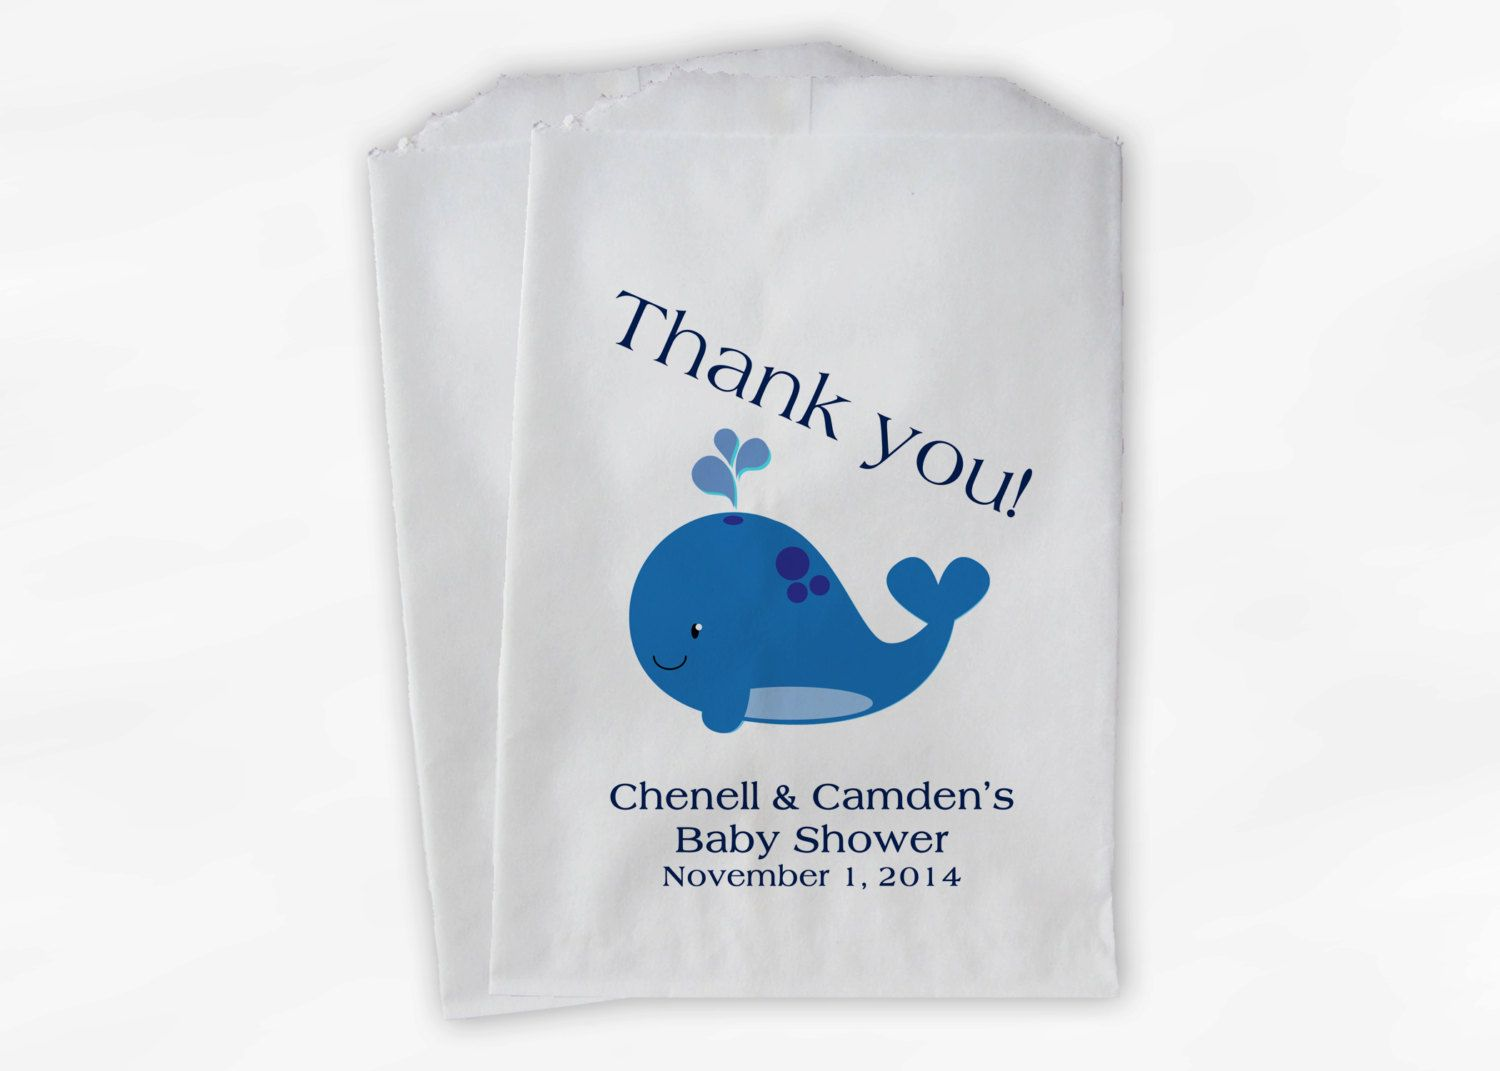 Blue Whale Baby Shower Favor Bags - Personalized Custom Treat Bags for Baby Shower - Paper Bags (0019)